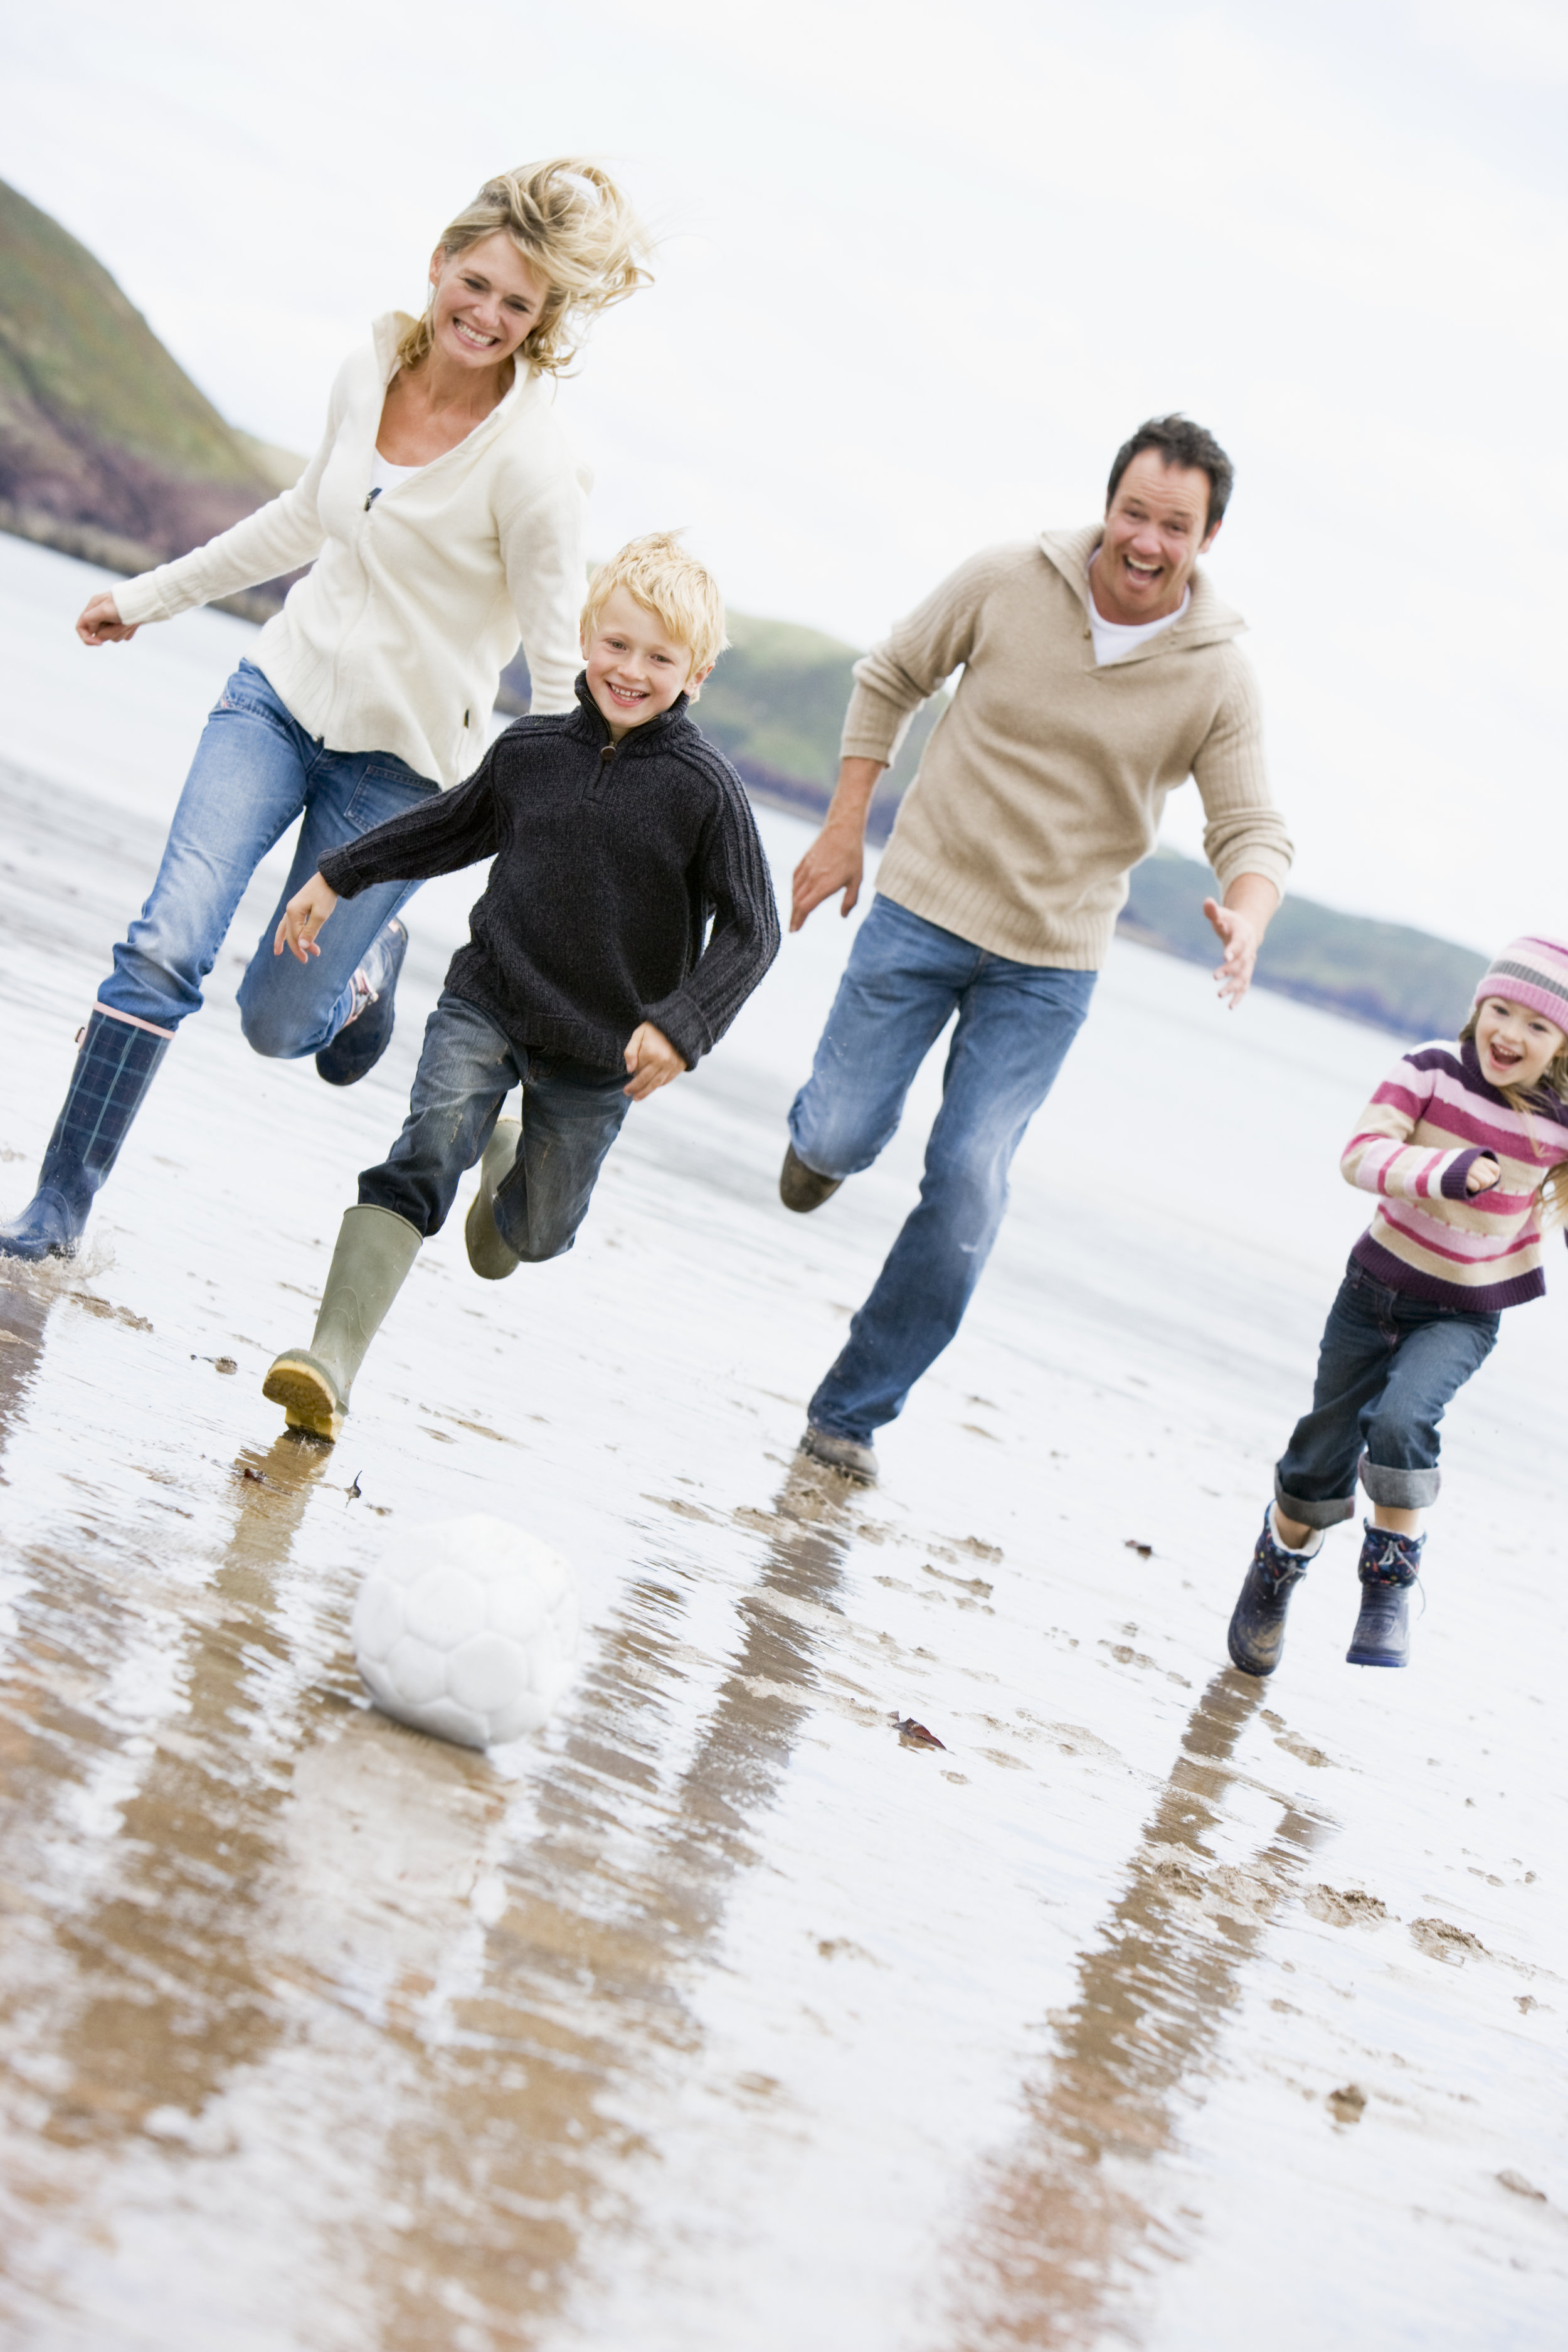 An active family and time for all to get moving in what they love